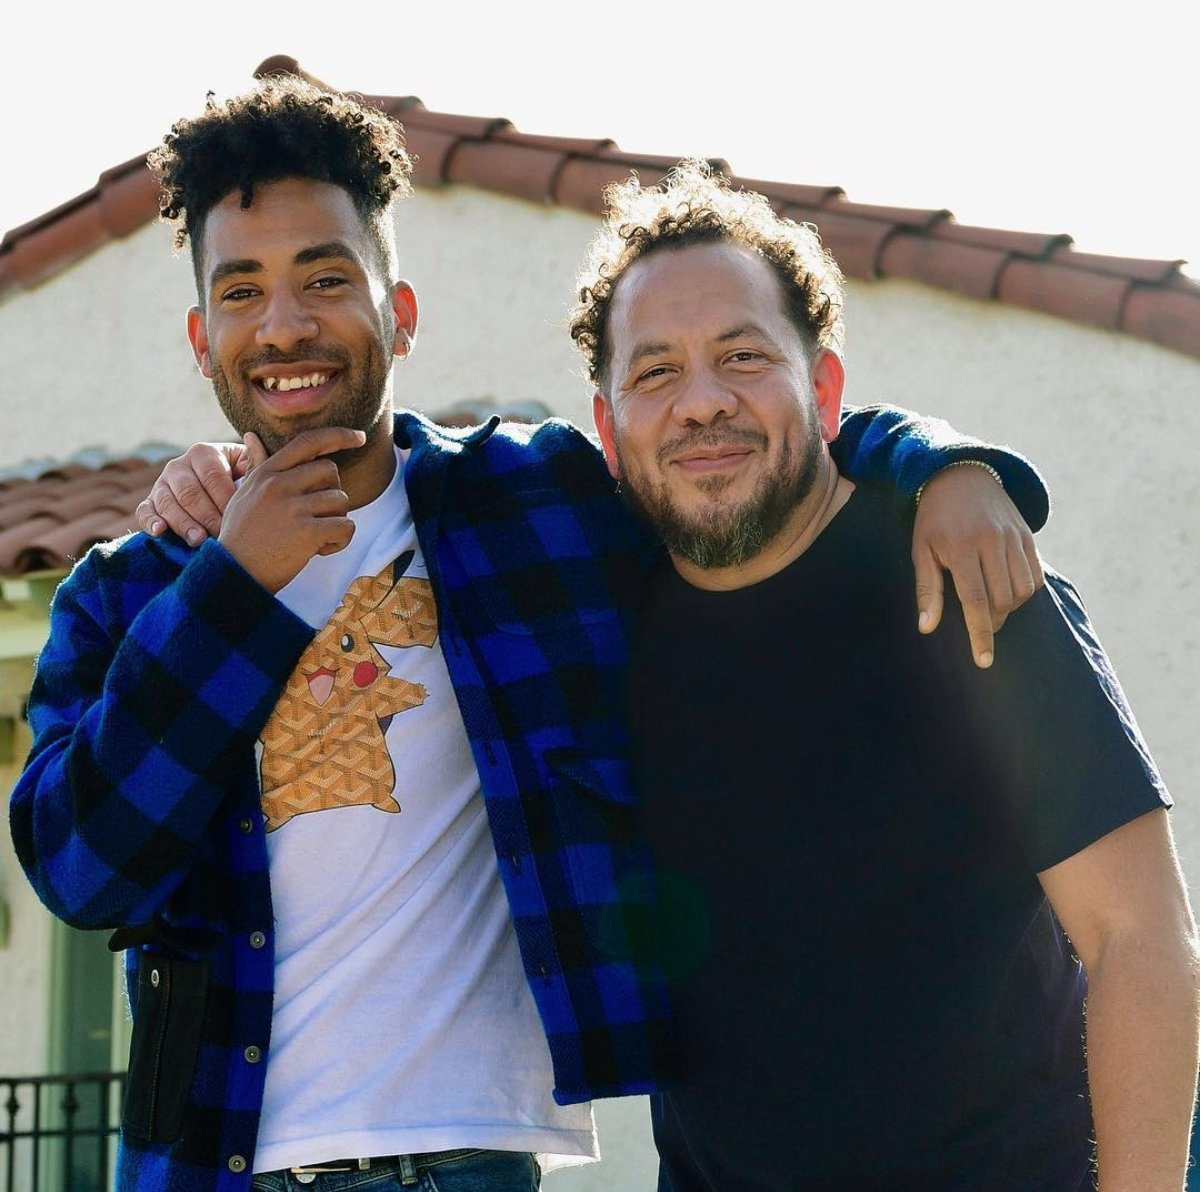 My new pal @superduperkyle! Coming soon. #CarTest #TIDAL #LightOfMine Photo: https://t.co/Of0aNPmuYj https://t.co/YPFuU1yOBr